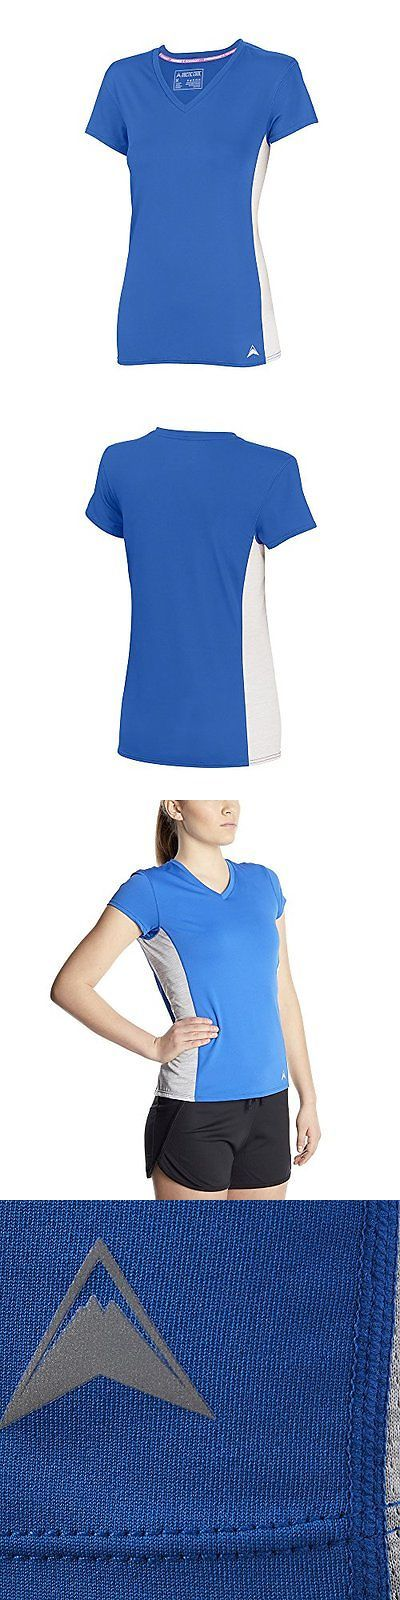 Gym Towels 179801: Arctic Cool Women S V-Neck Instant Cooling Shirt W Mesh -> BUY IT NOW ONLY: $44.43 on eBay!